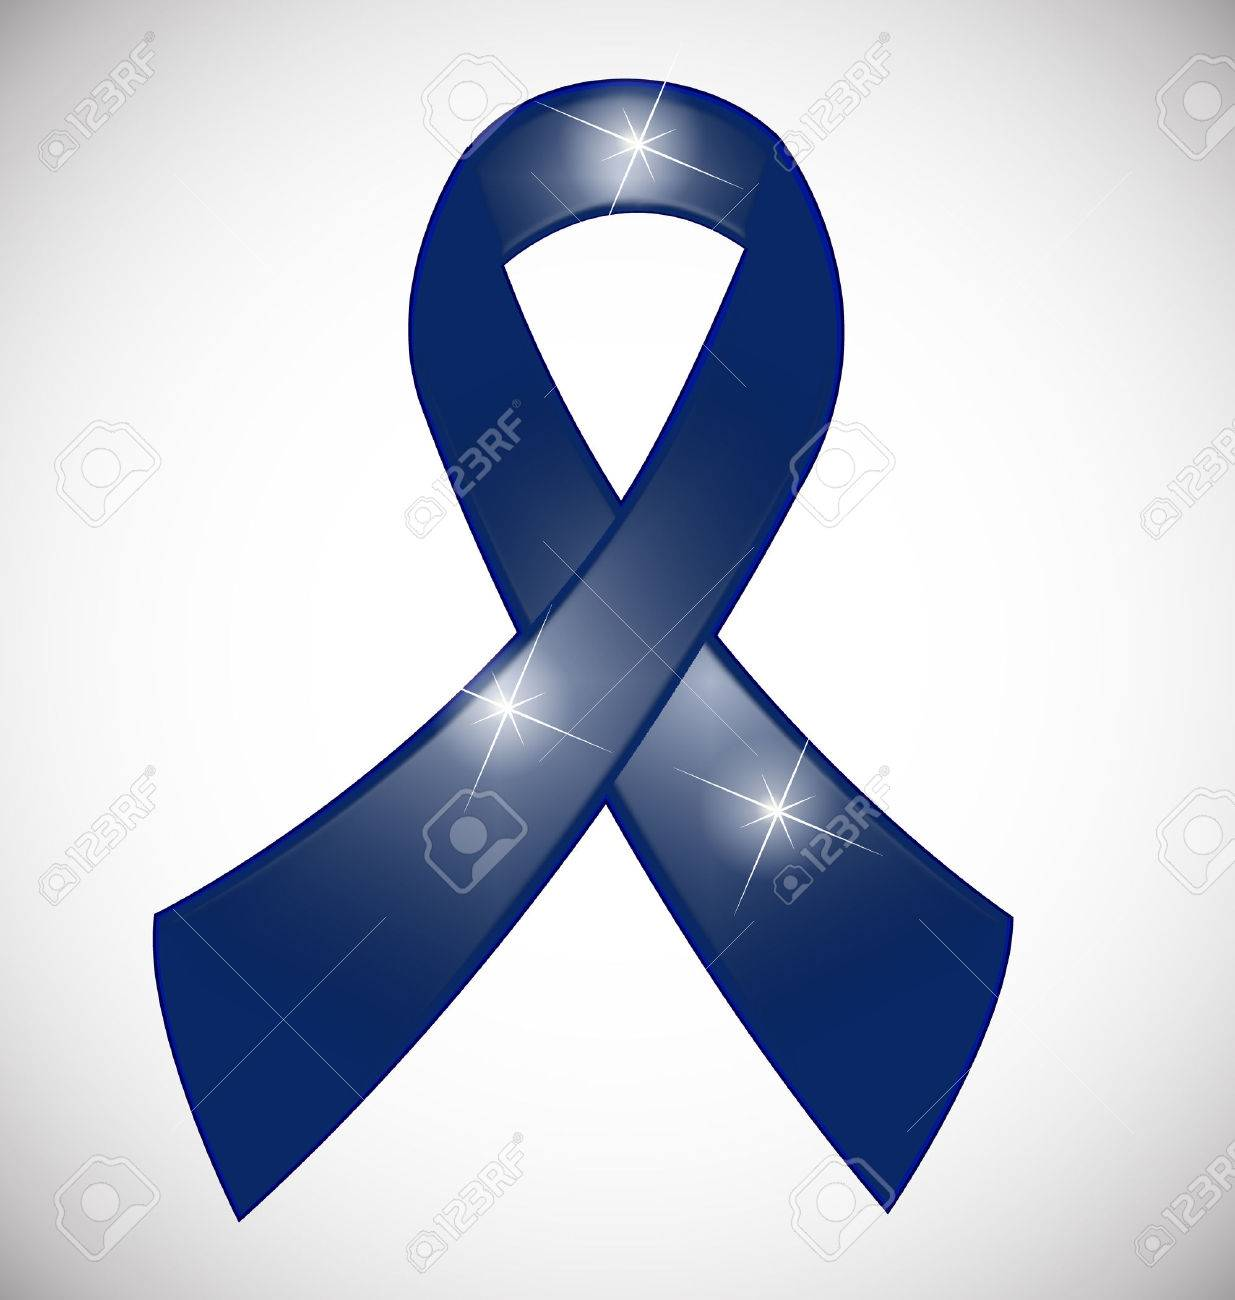 164 Colon Cancer Ribbon Stock Vector Illustration And Royalty Free